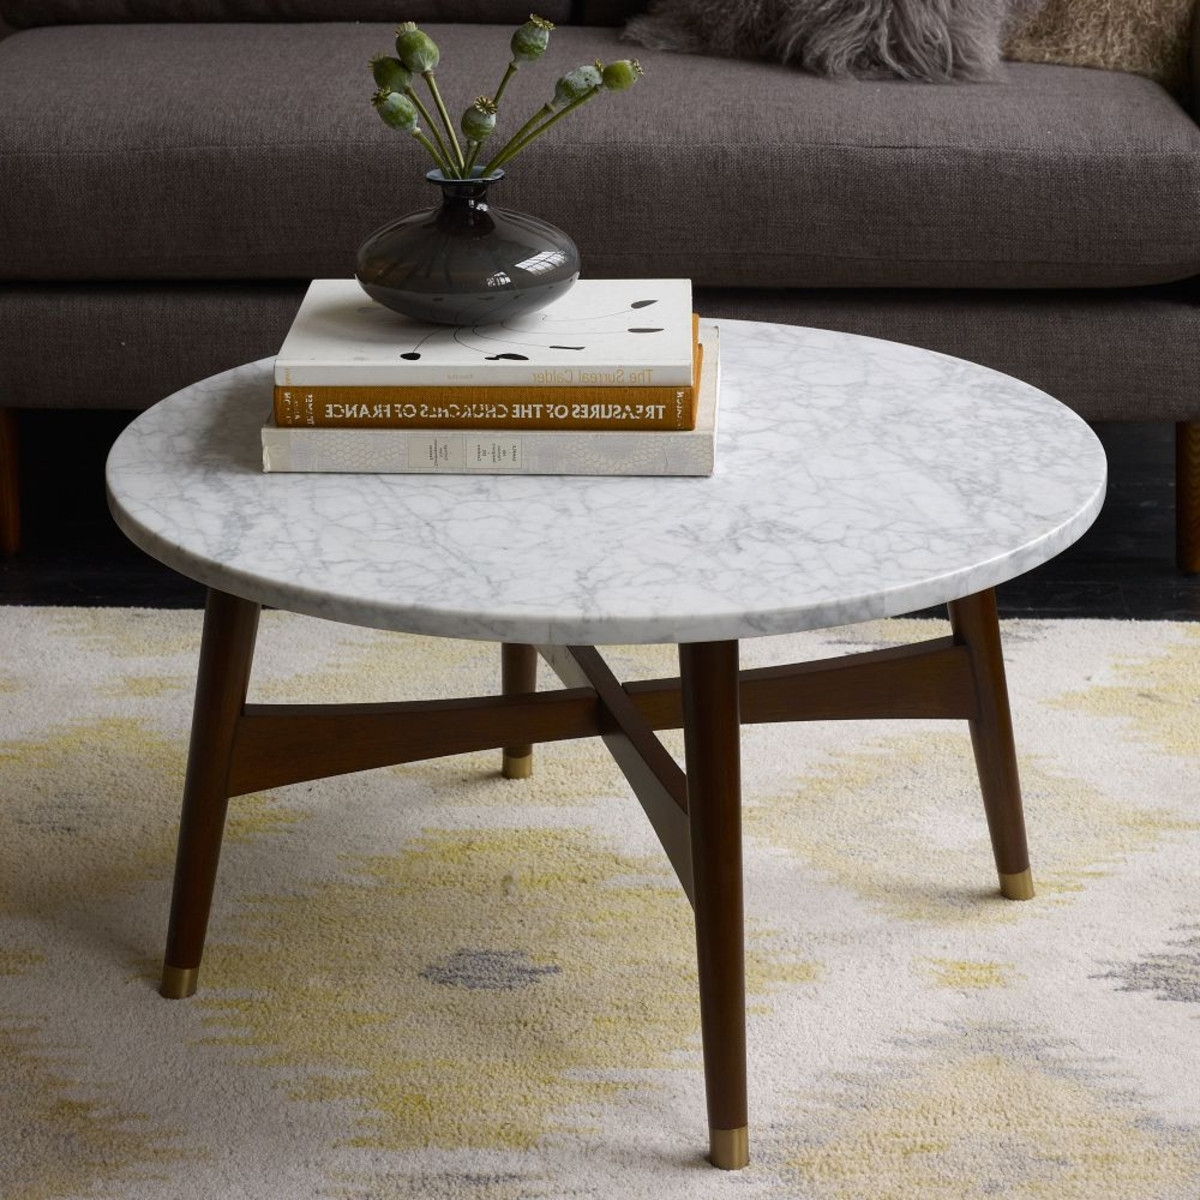 2017 2 Tone Grey And White Marble Coffee Tables With Decor: Inspiring Marble Coffee Table For Living Room Furniture Ideas (View 7 of 20)